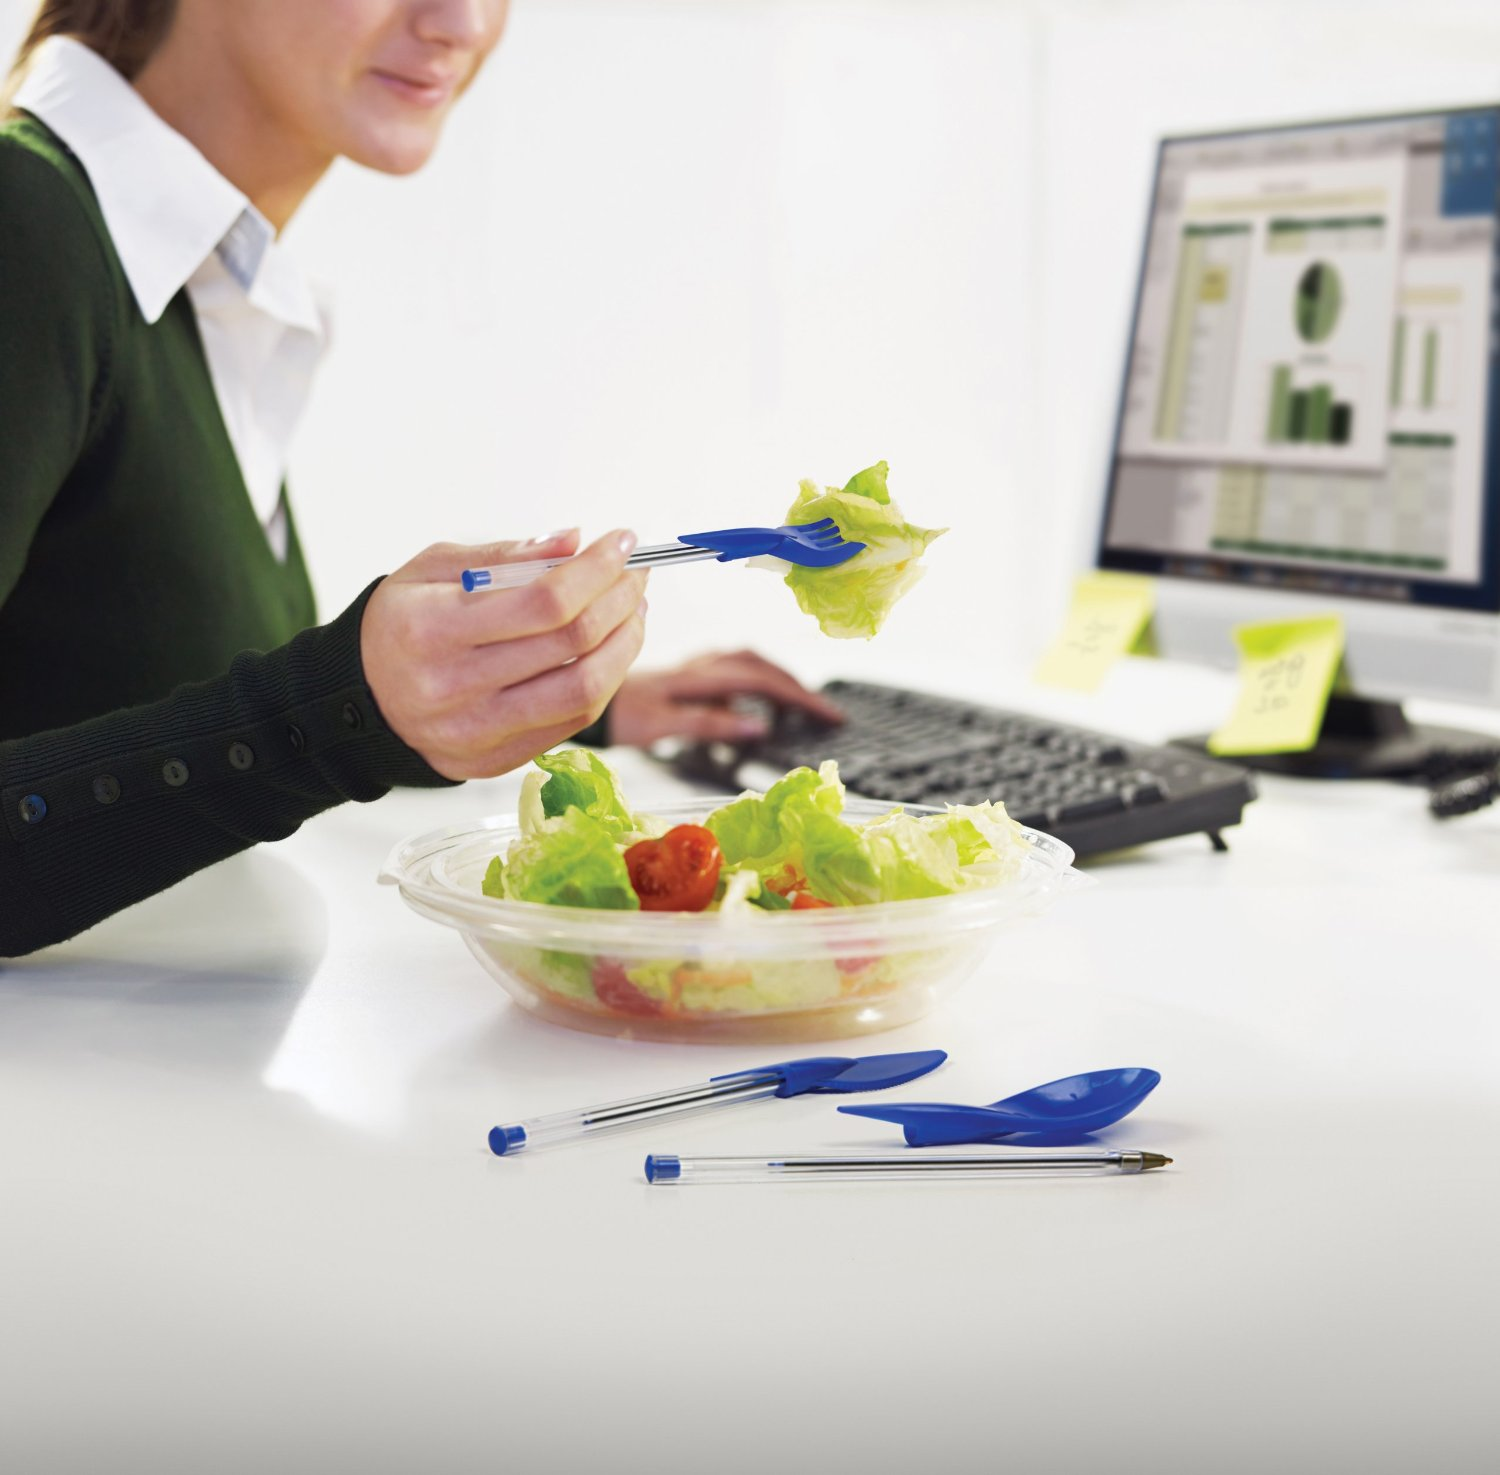 Eating at your desk? At least do it in style